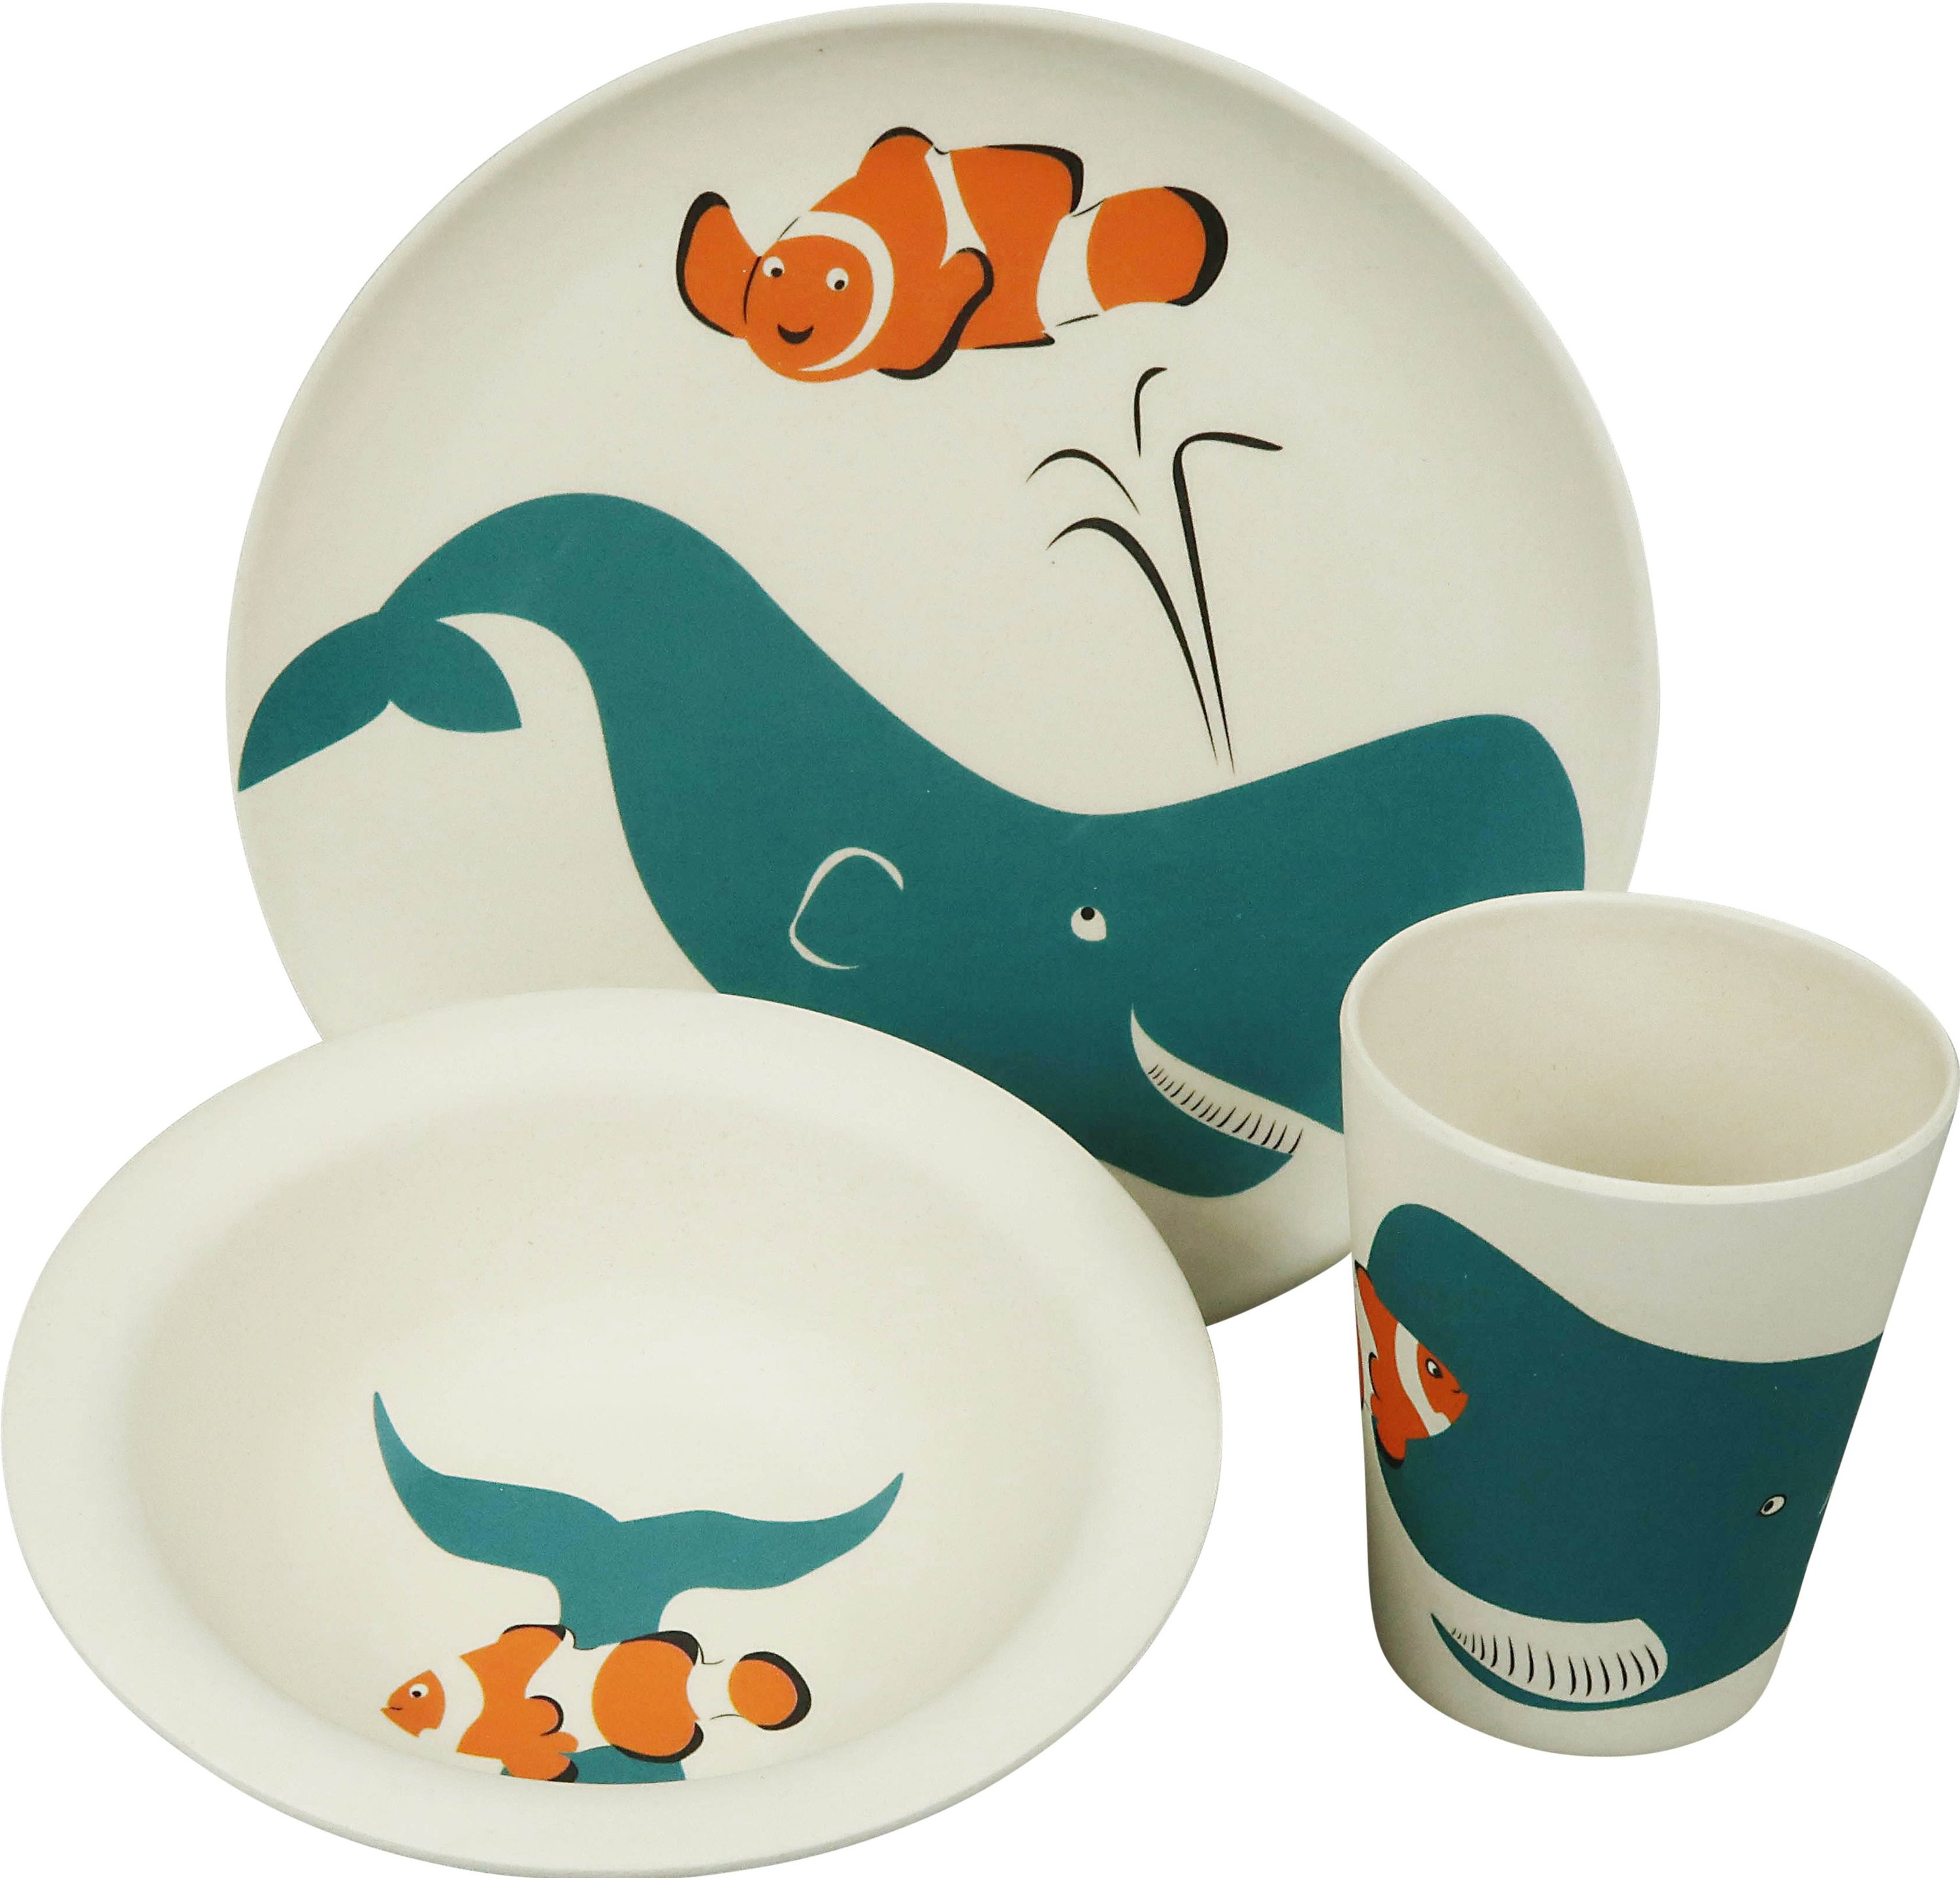 Zuperzozial Hungry Kids Whale children's service set